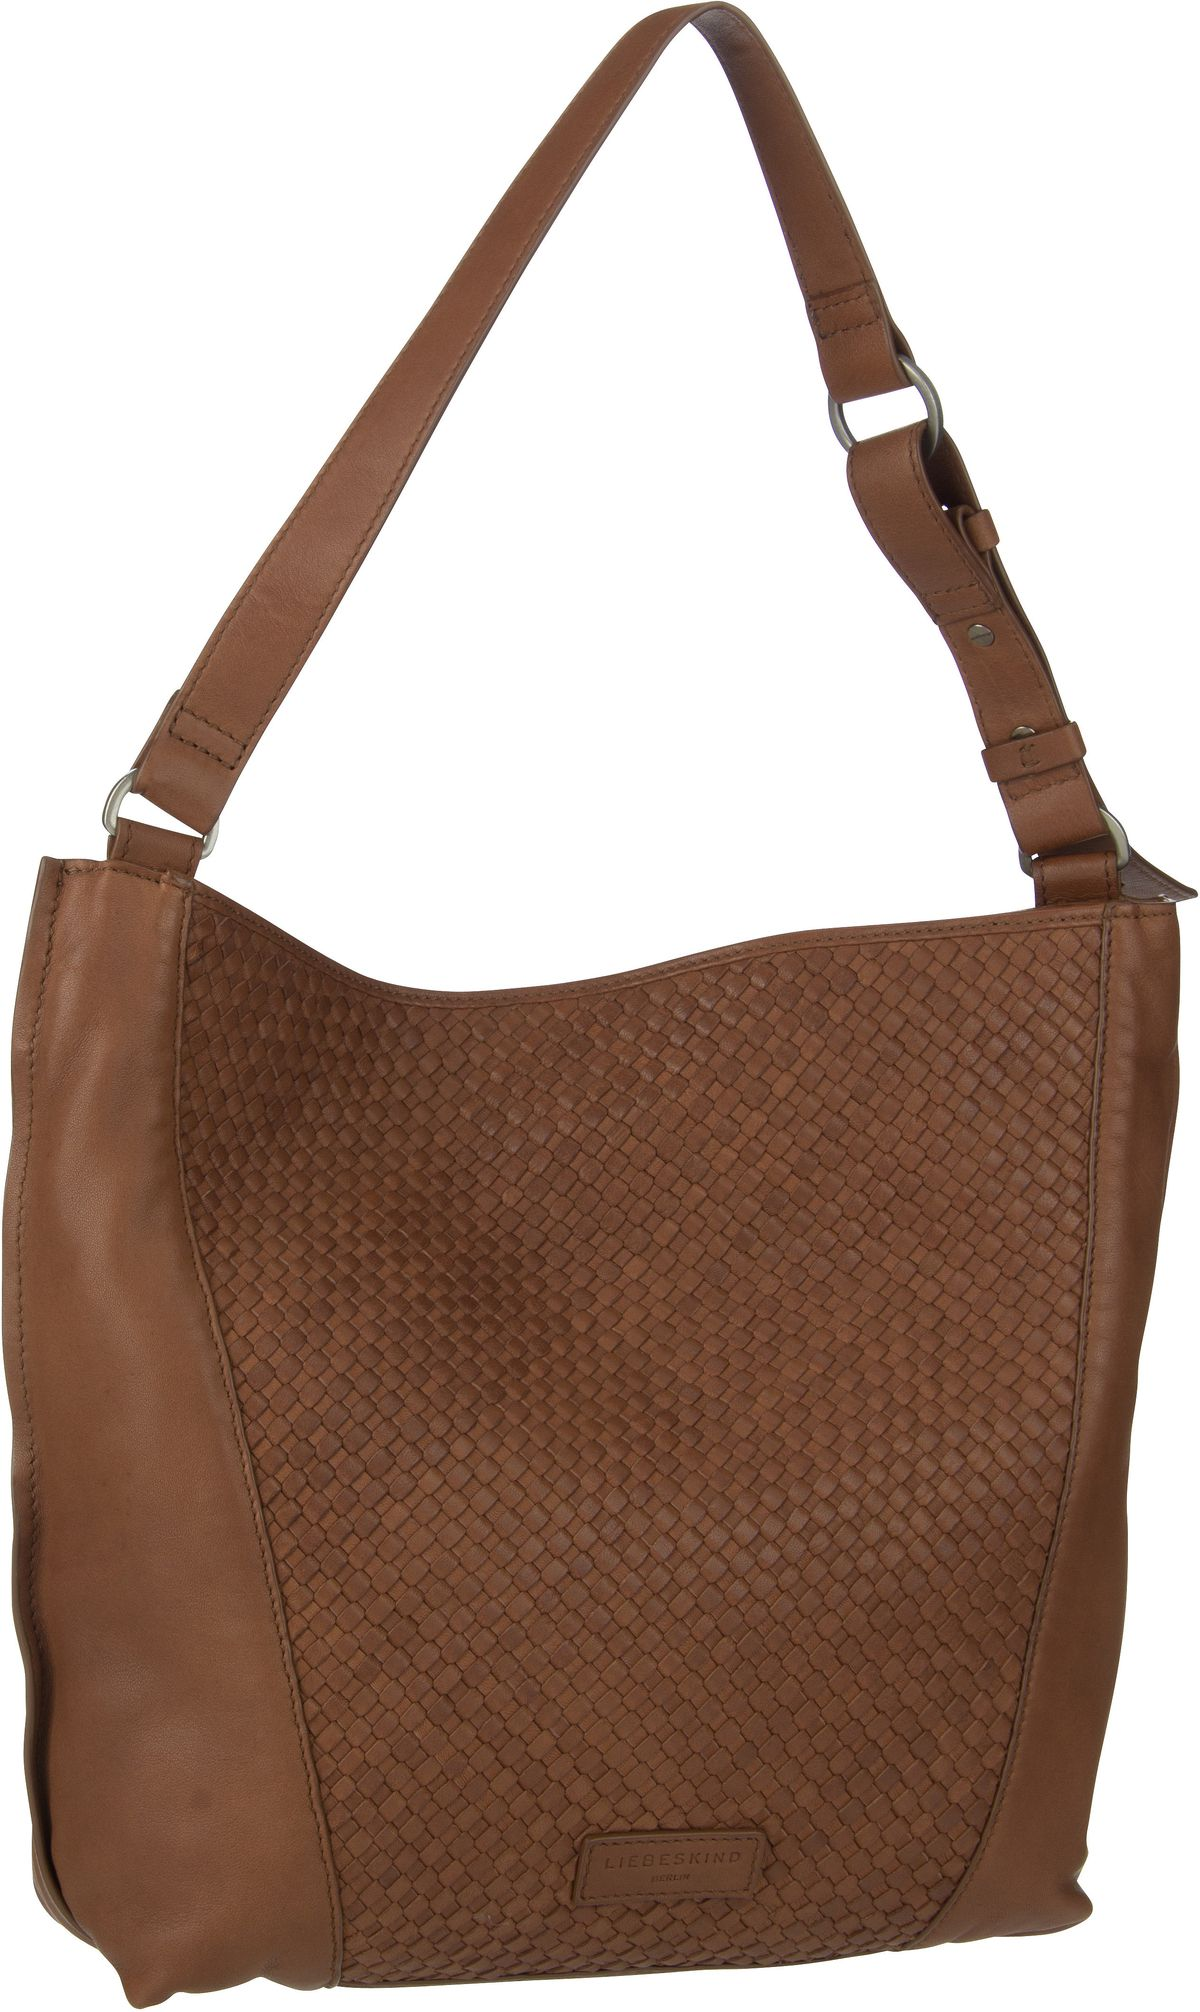 Berlin Handtasche Santa Fe Hobo M Medium Brown